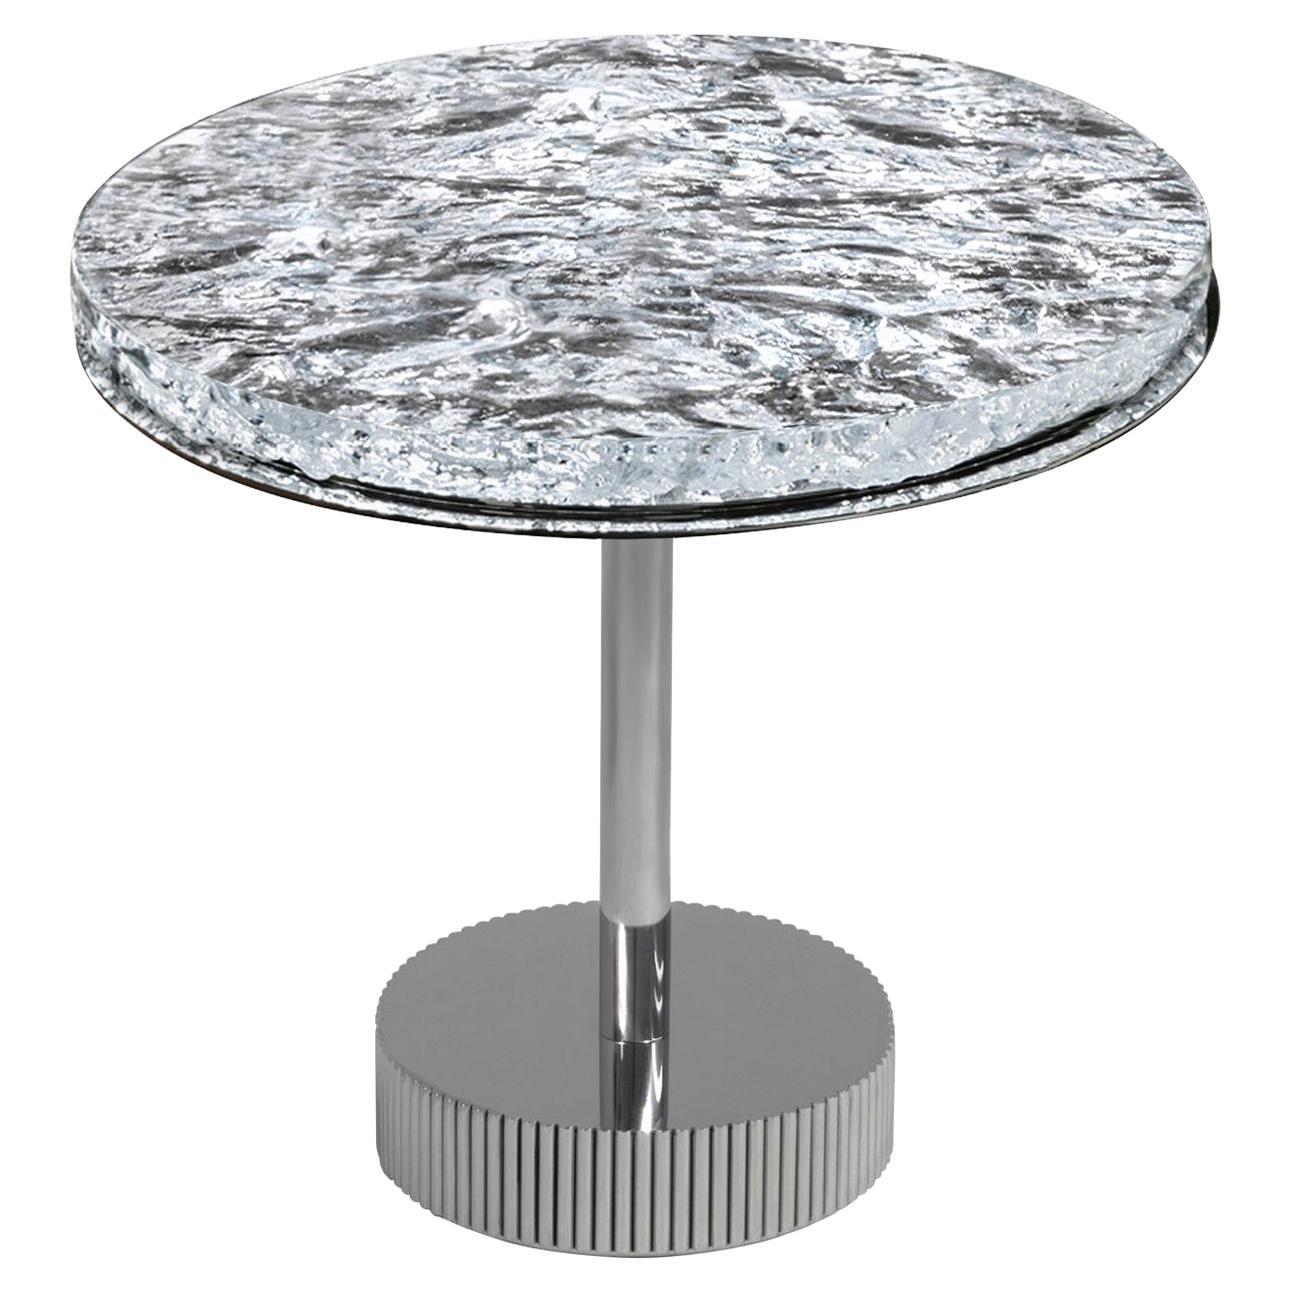 Contemporary Coffee Table by Hessentia with Artistic Glass Top and Metal Base